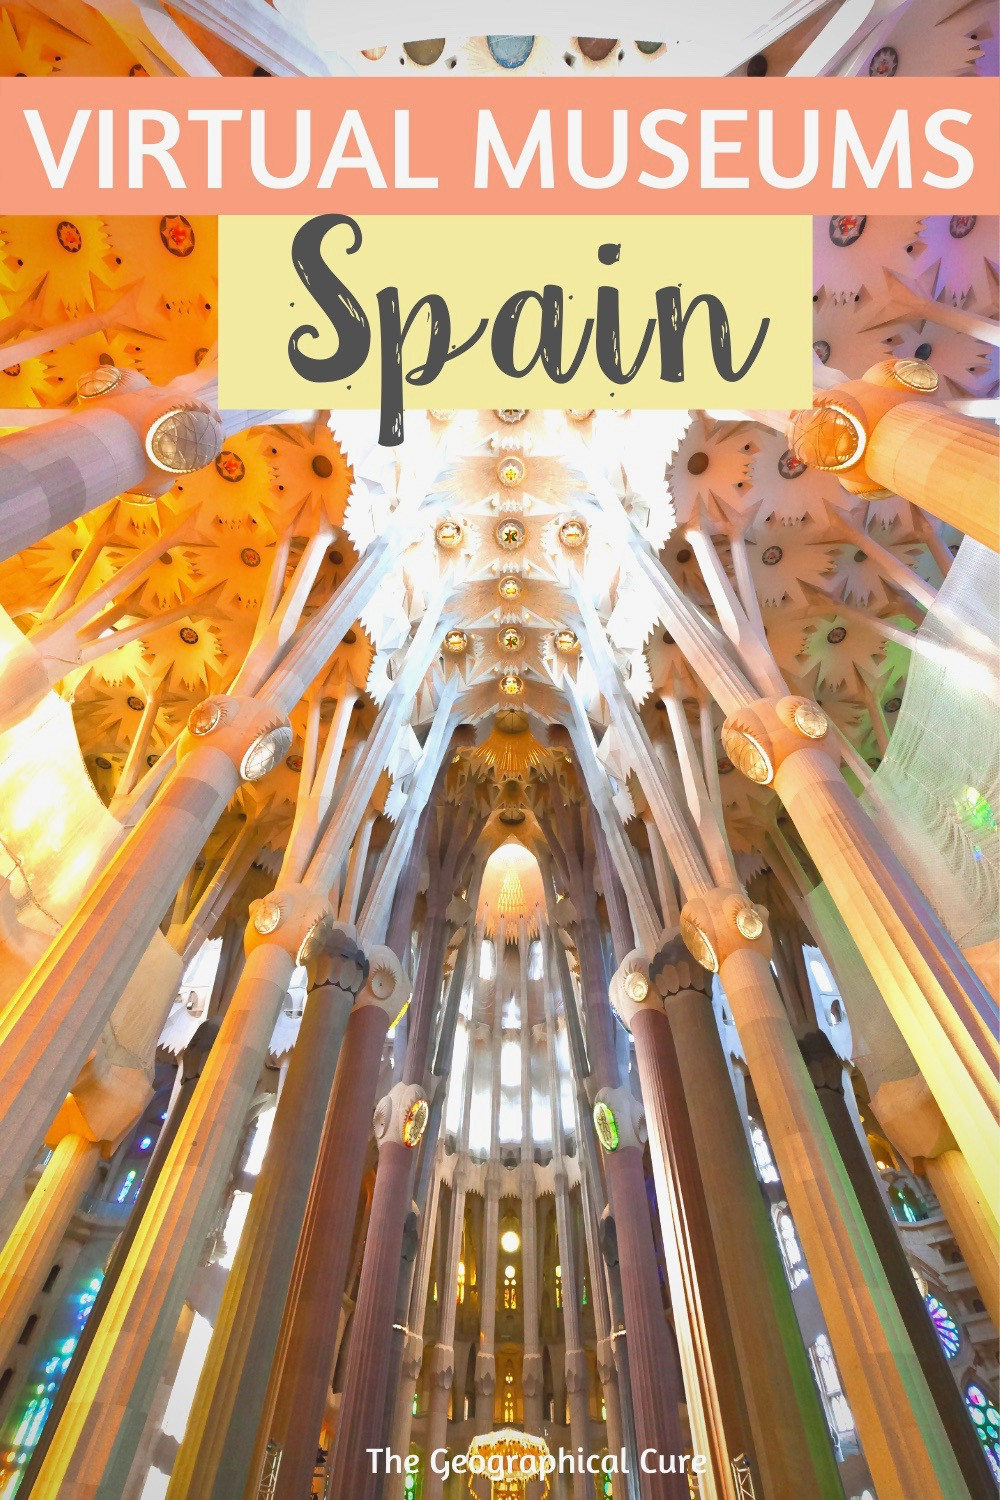 amazing virtual museums in Spain to visit and enjoy online at home